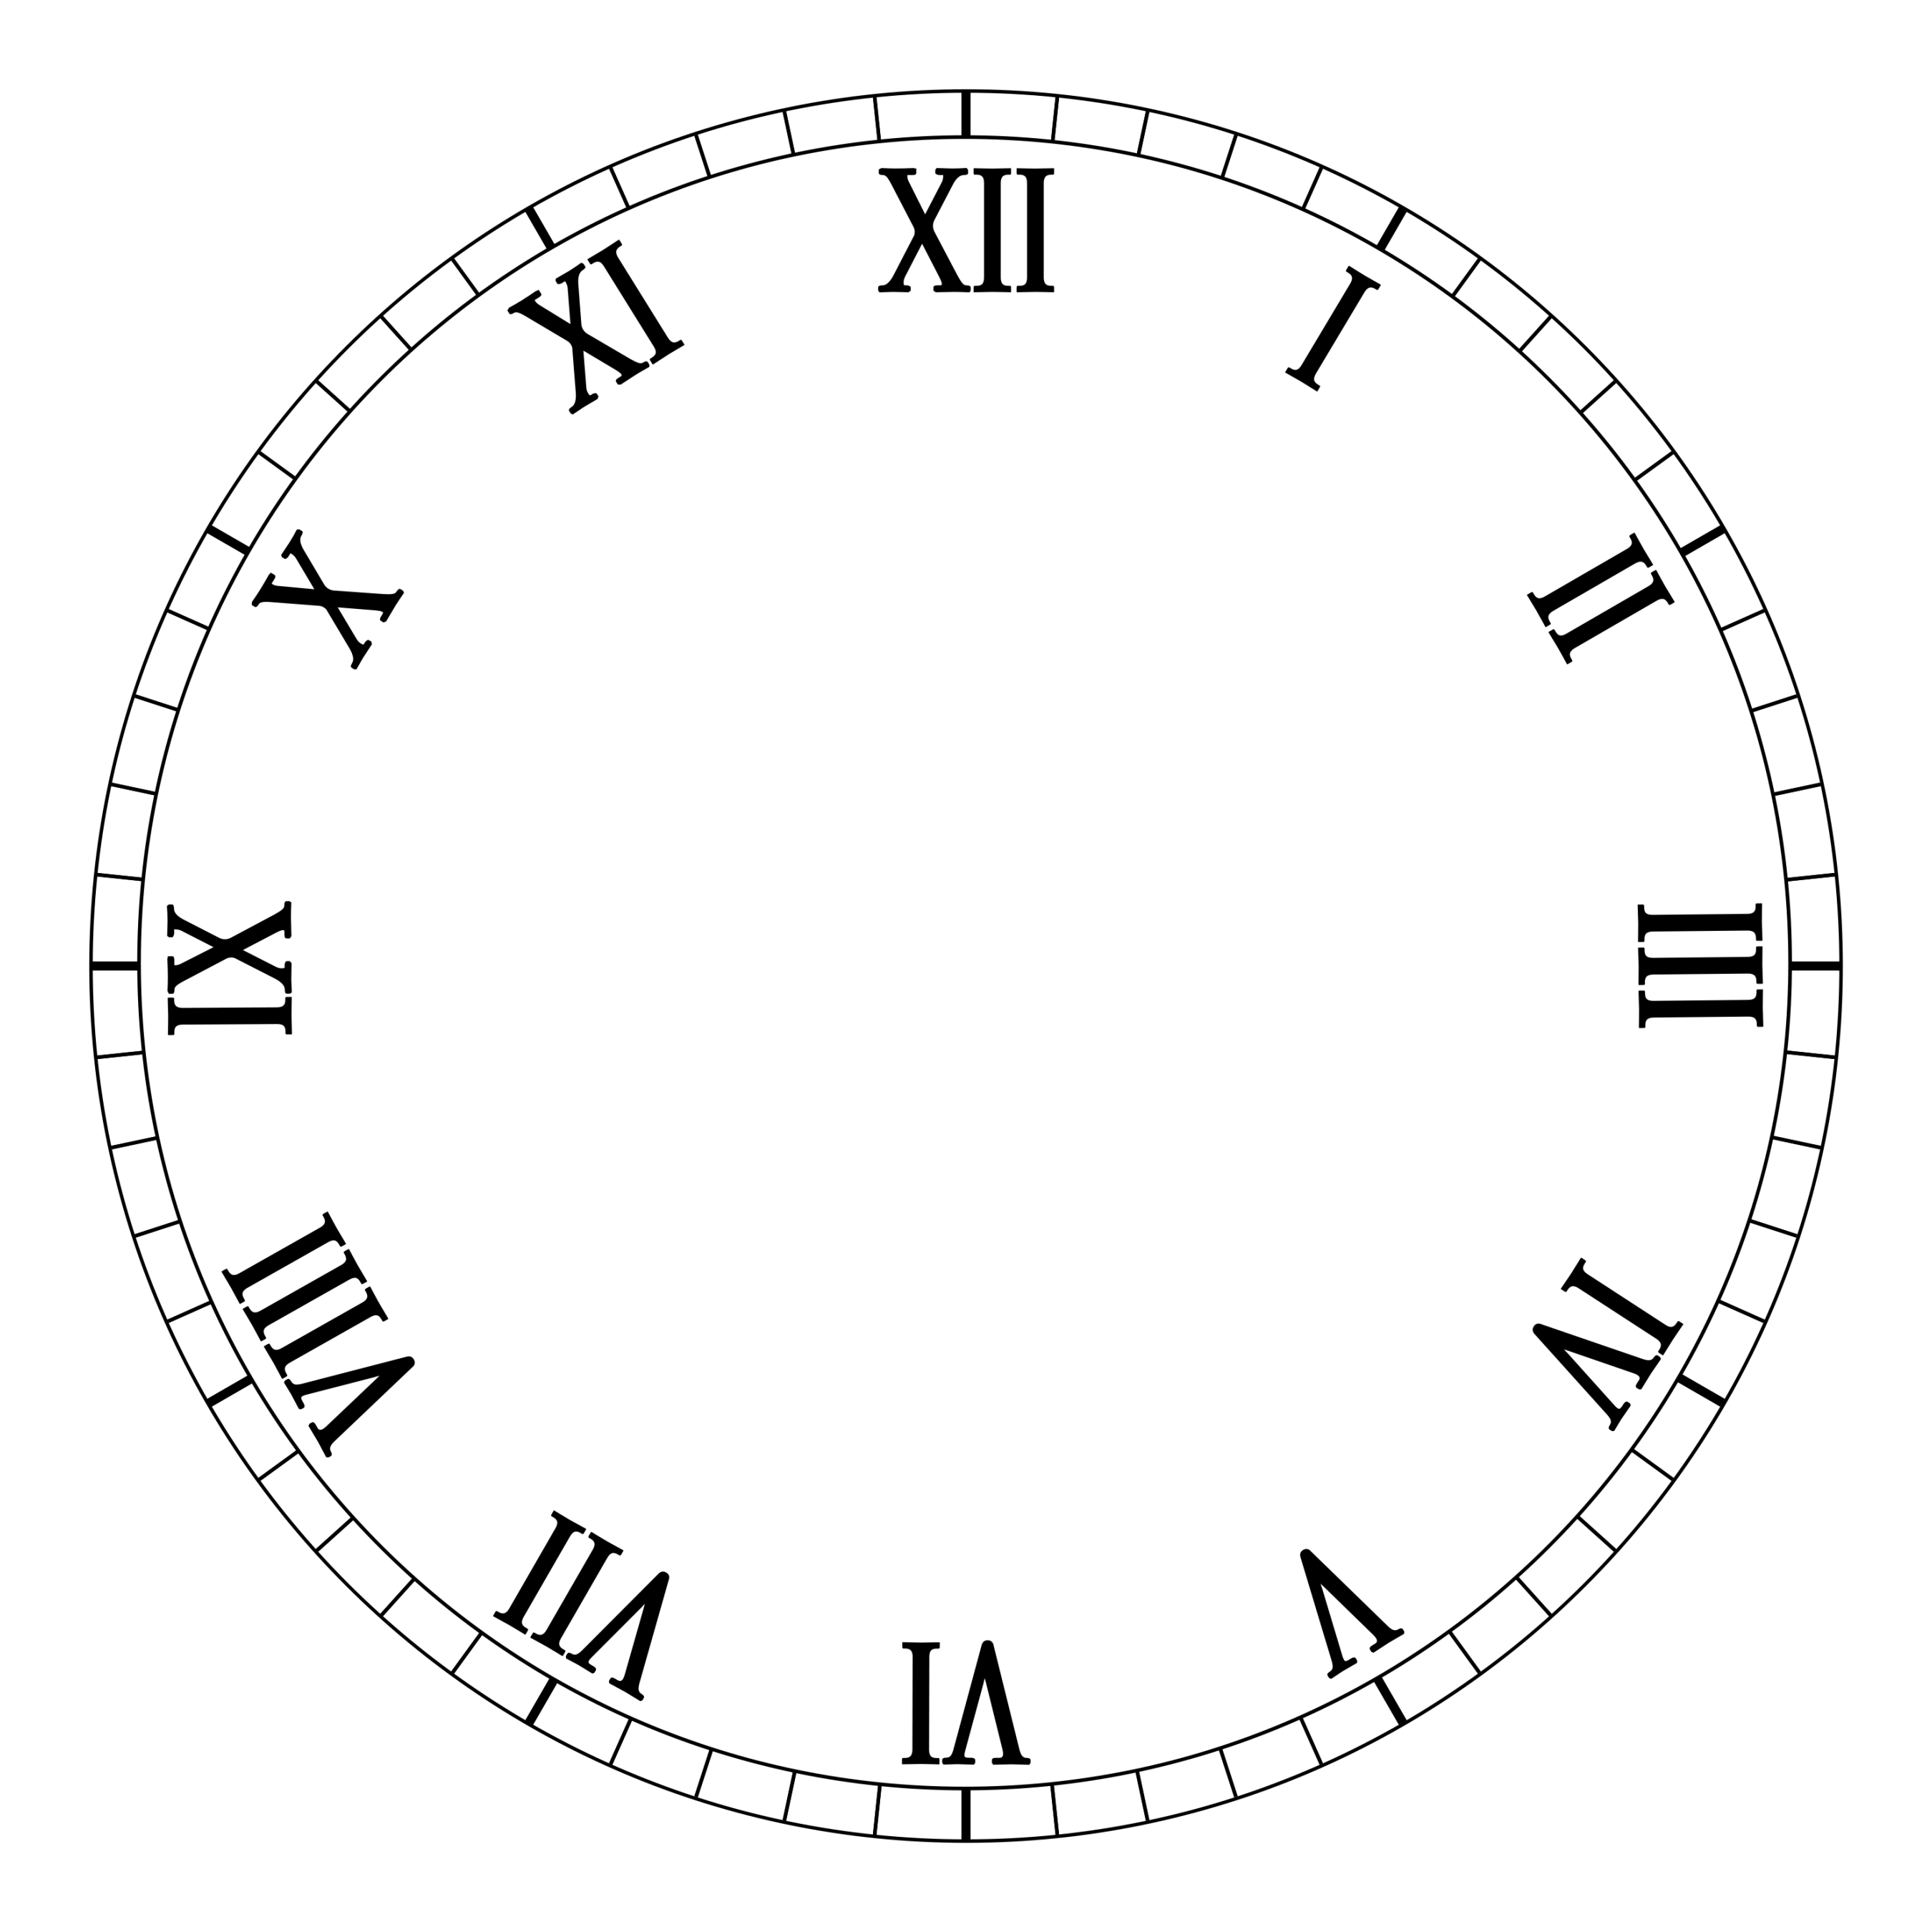 Free Printable Clock Face